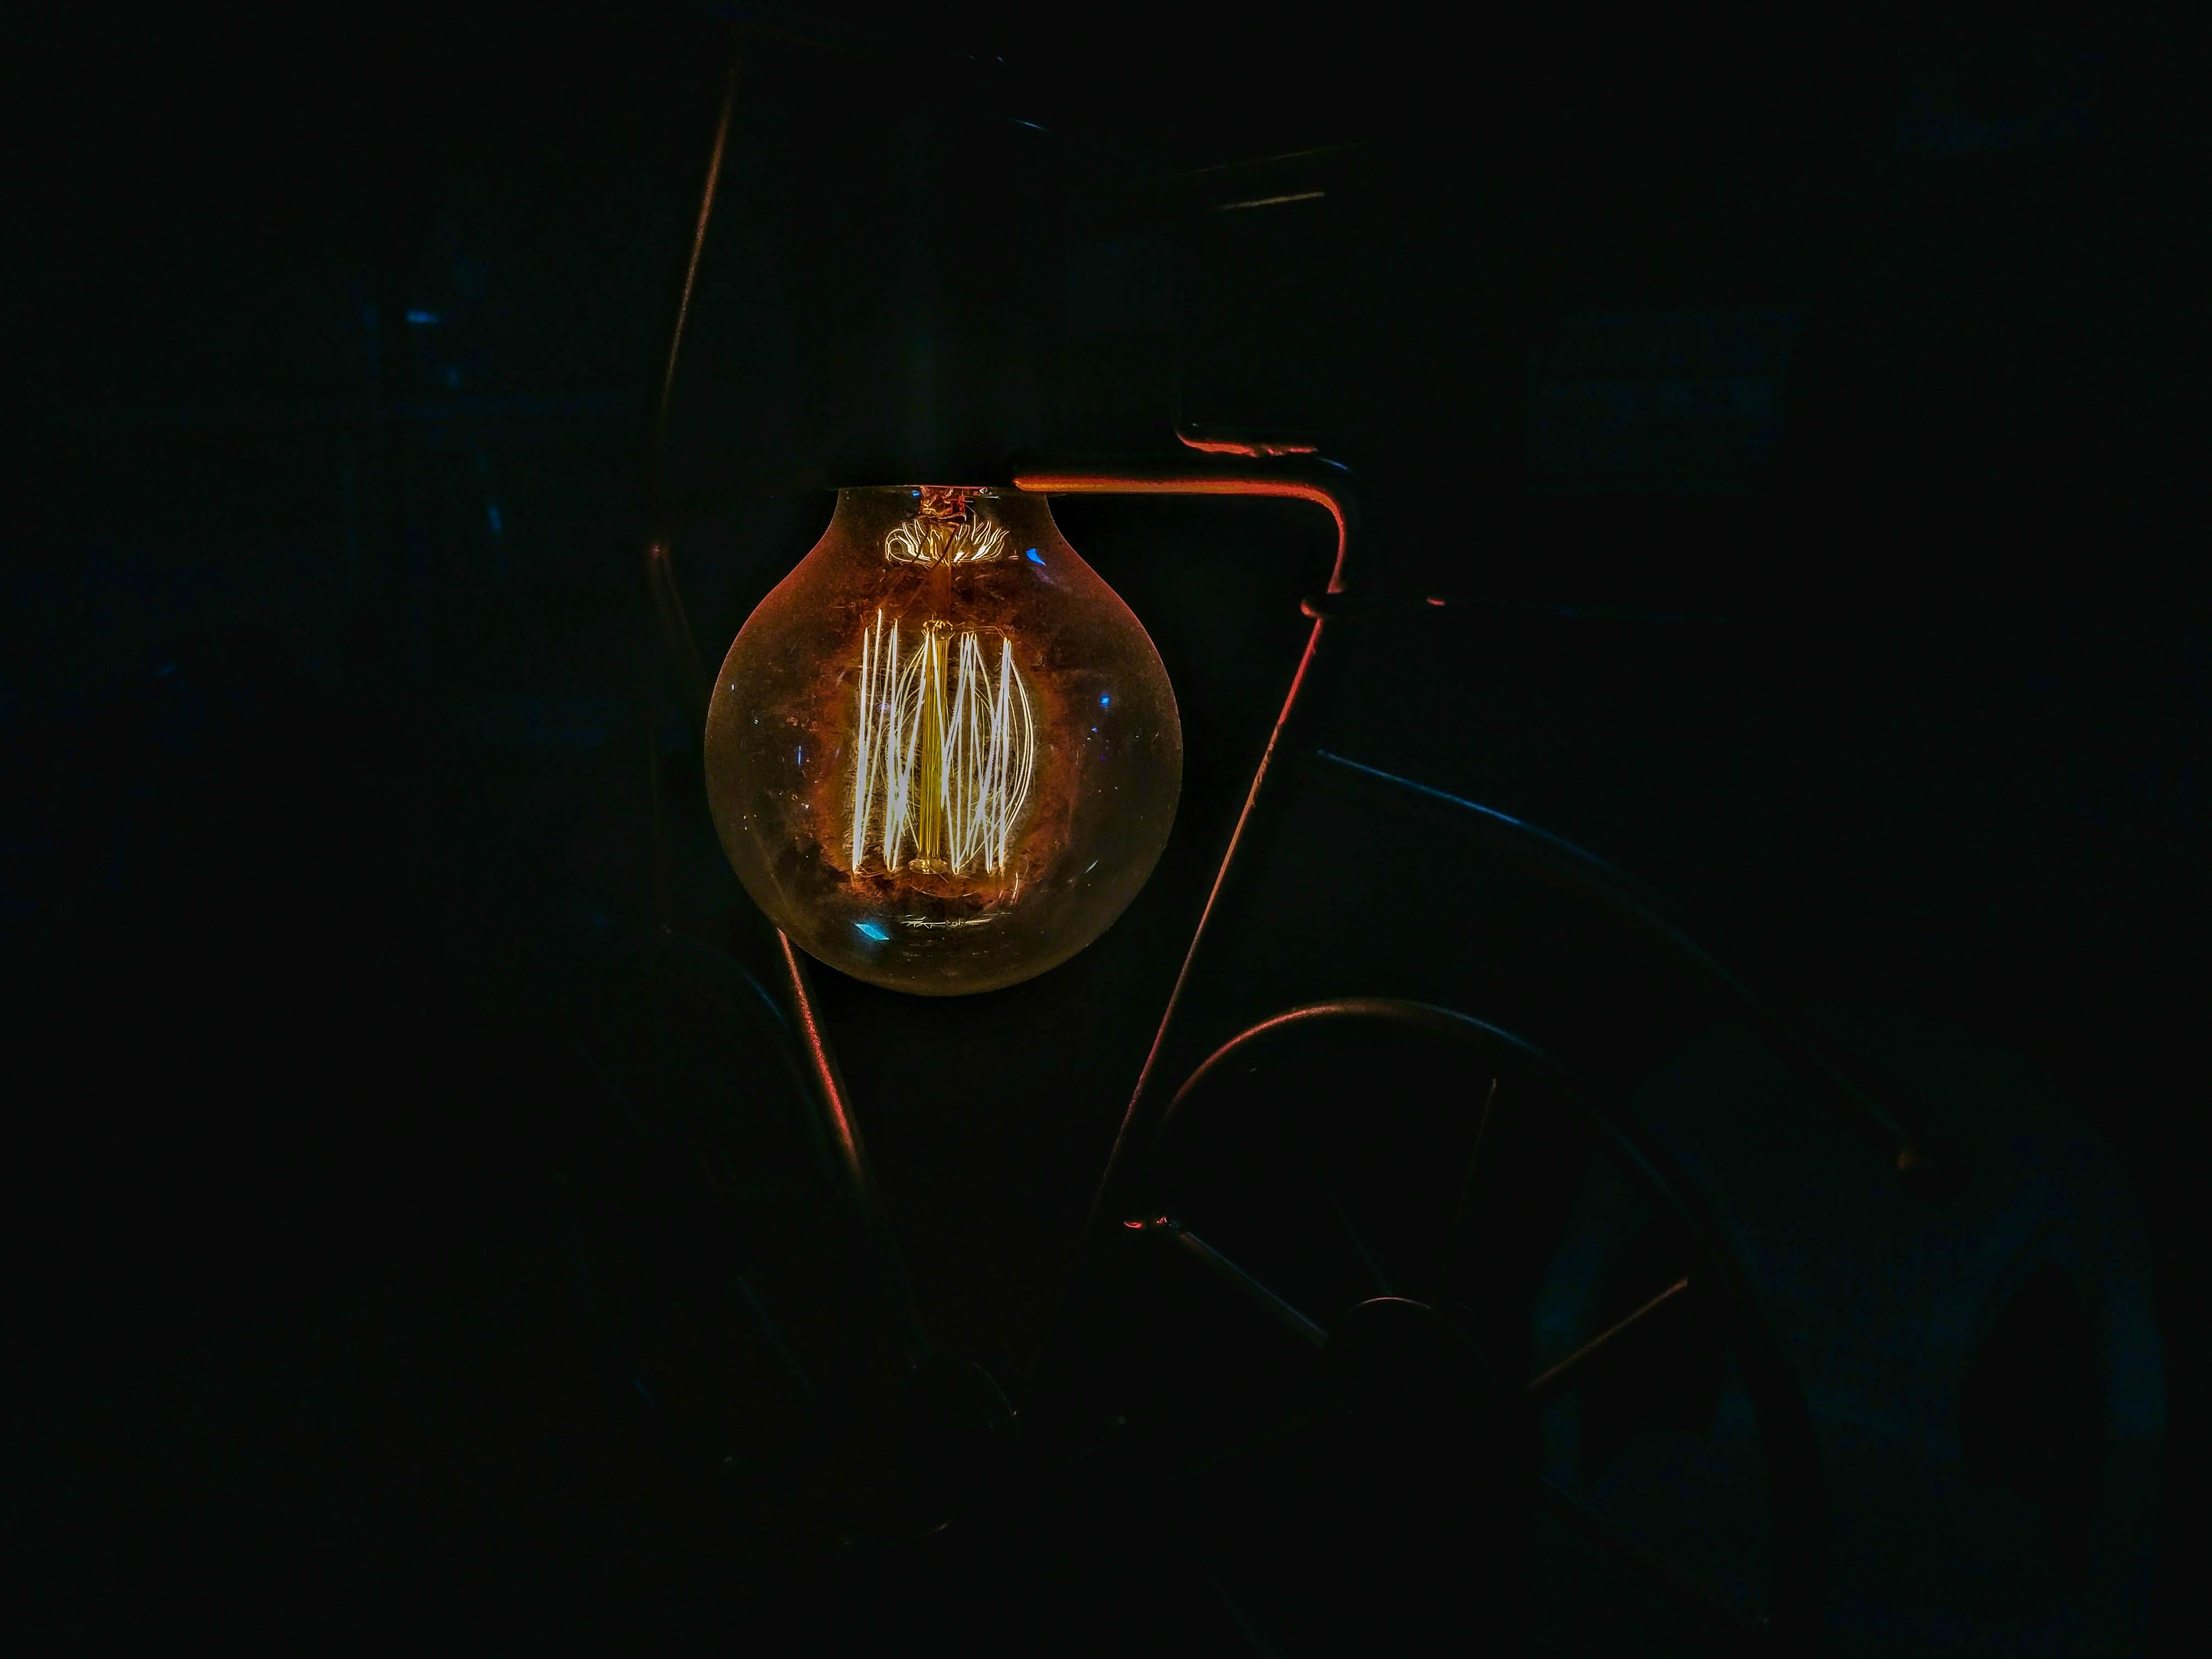 Free stock photo of abstract, bulb, candlelight, capture